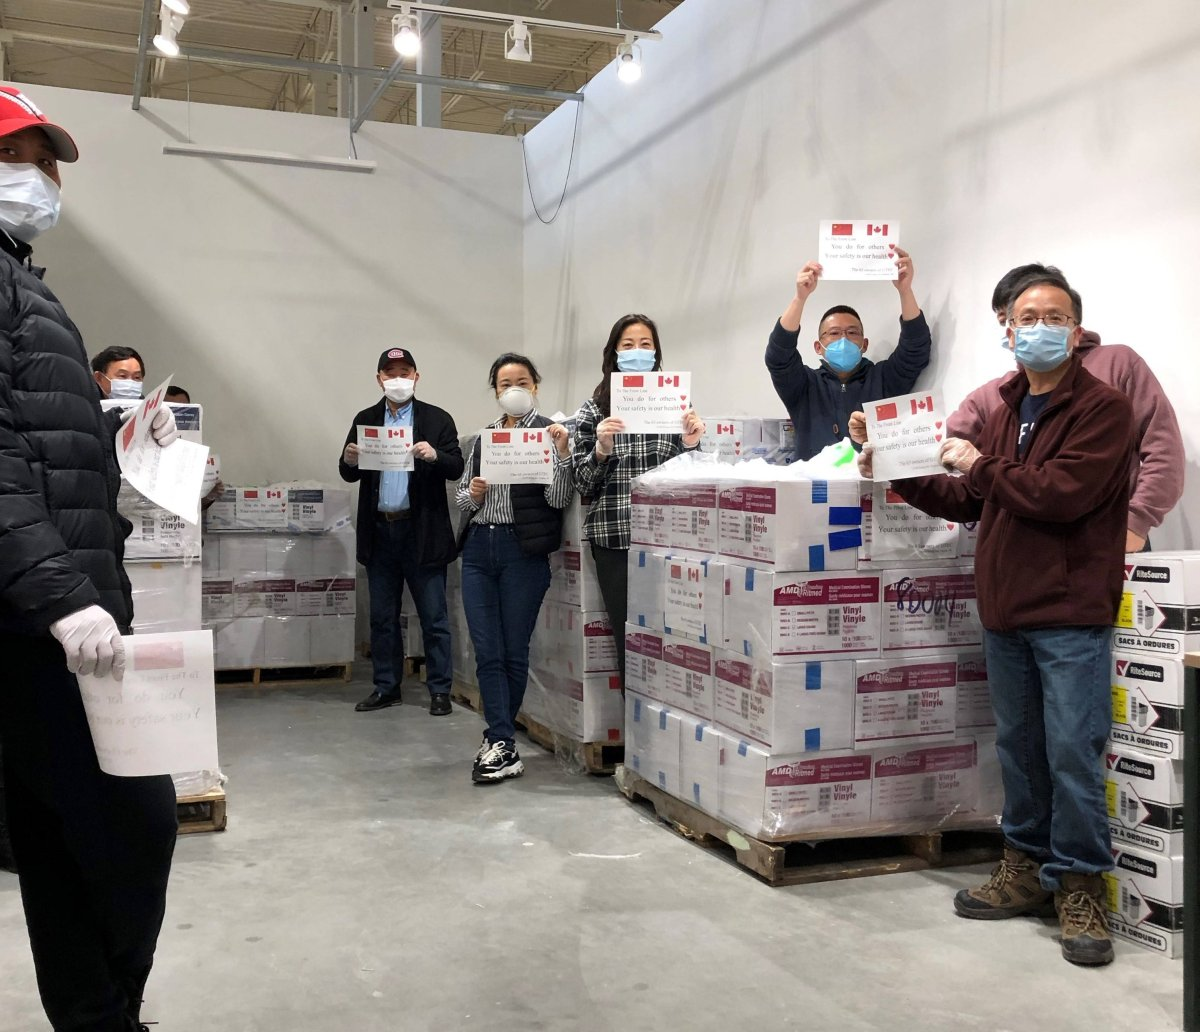 GTEC owners donate 380,000 medical gloves to support workers on the front lines.